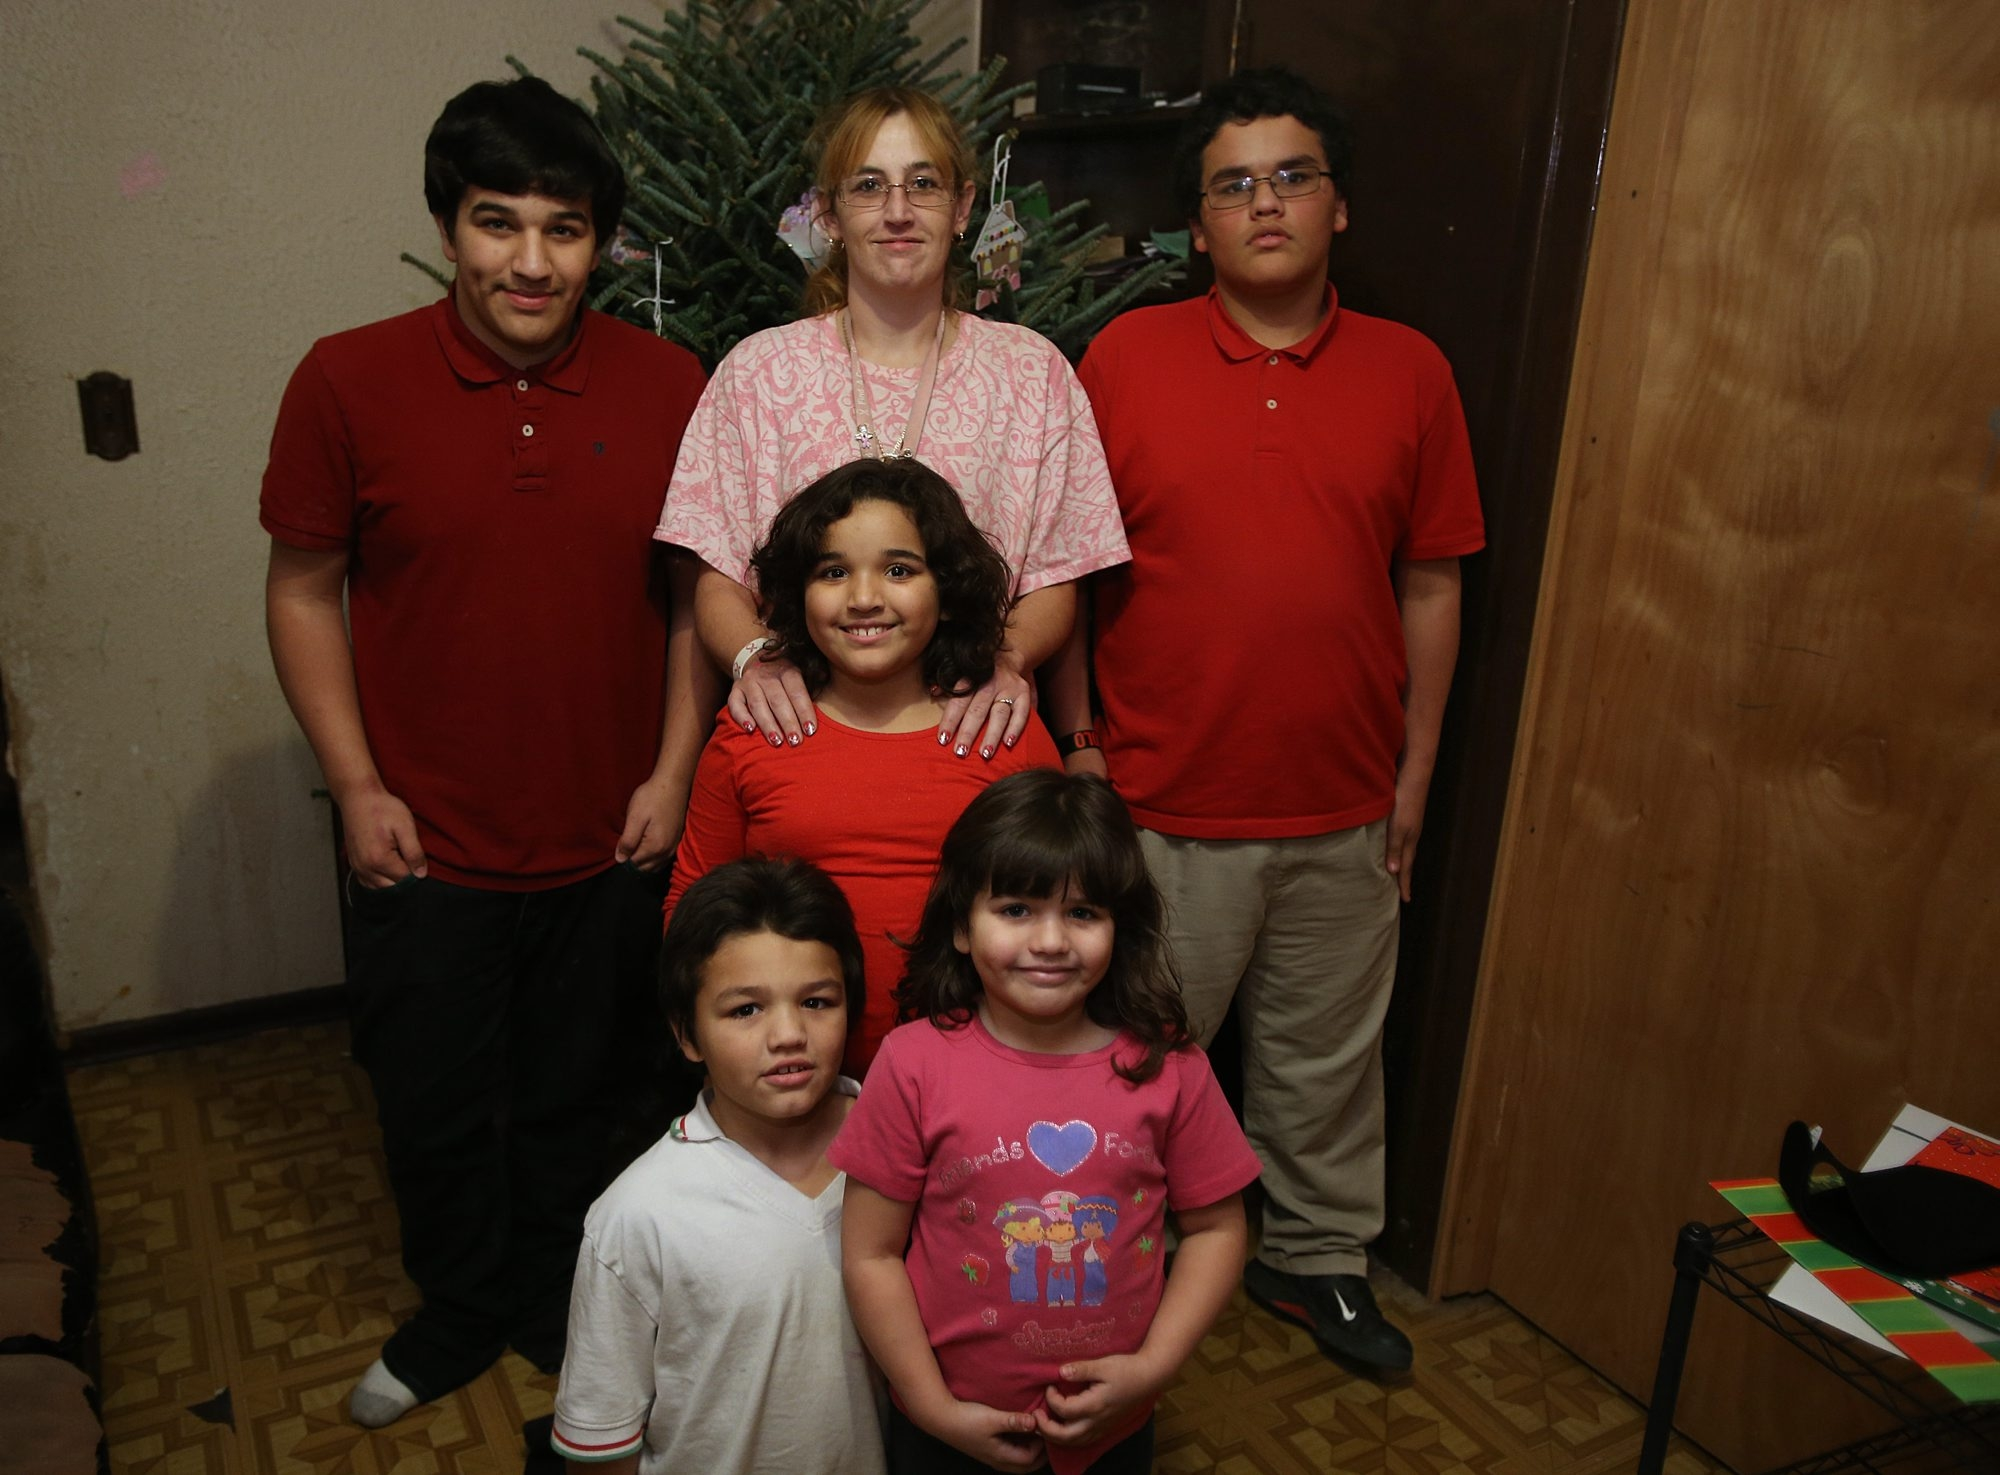 Sara Chance and her children, from left, Daniel, Dylan, Julianna, Leilani and Dominick, relocated to the West Side after being evicted.